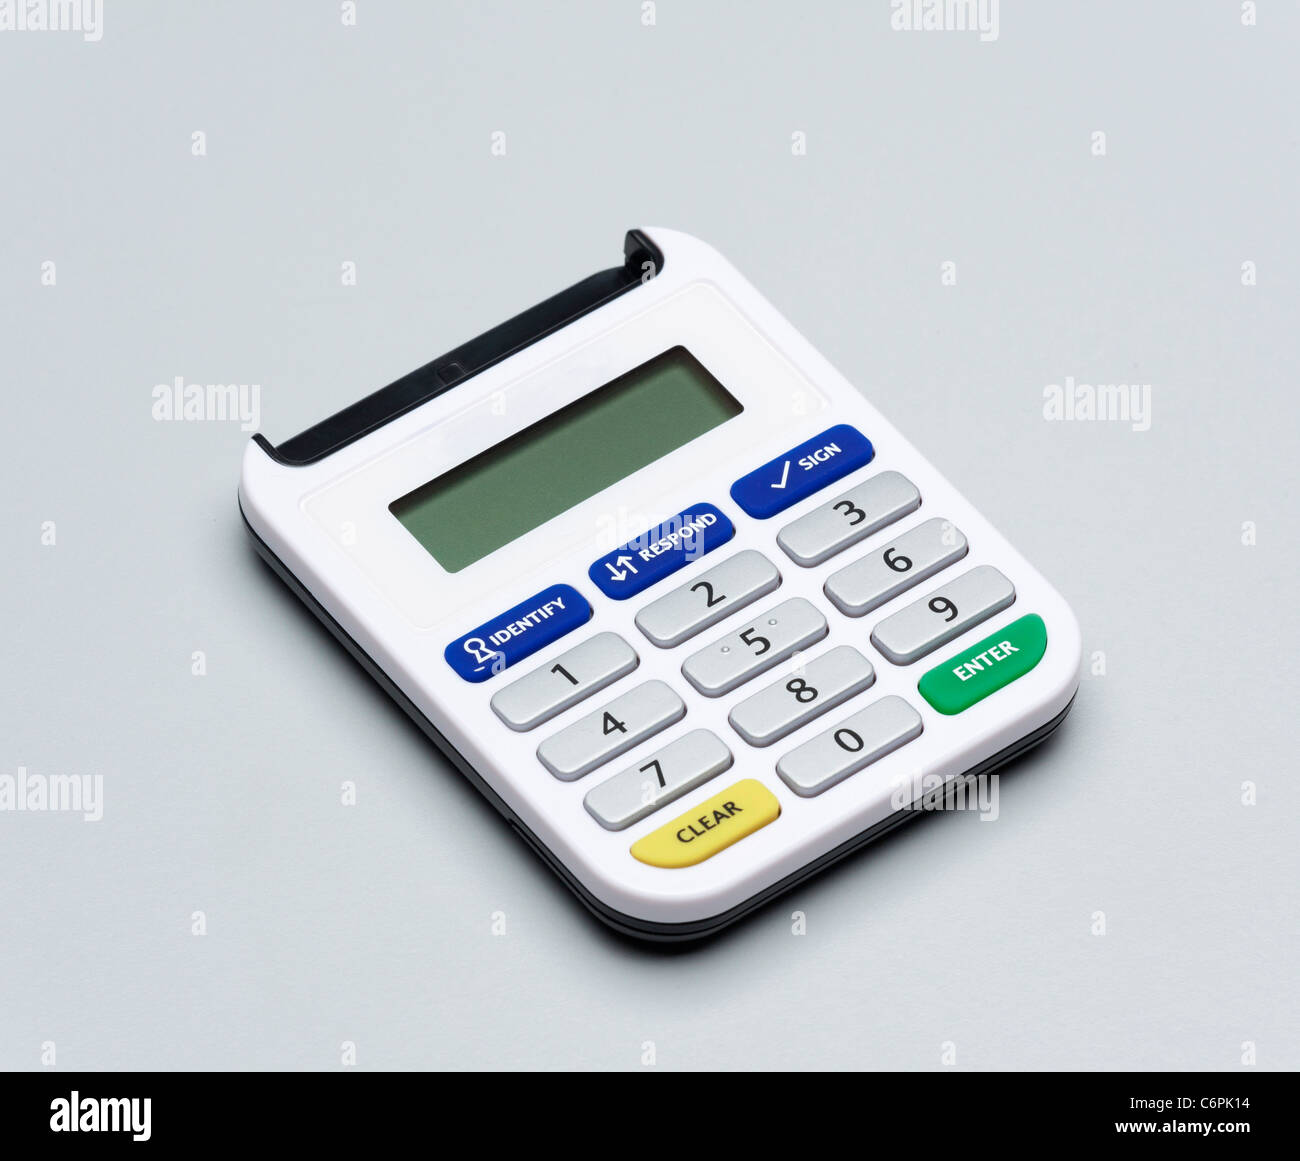 Lloyds bank security card reader stock photos lloyds bank security secure password code generator for online internet banking for lloyds tsb business accounts stock image reheart Images